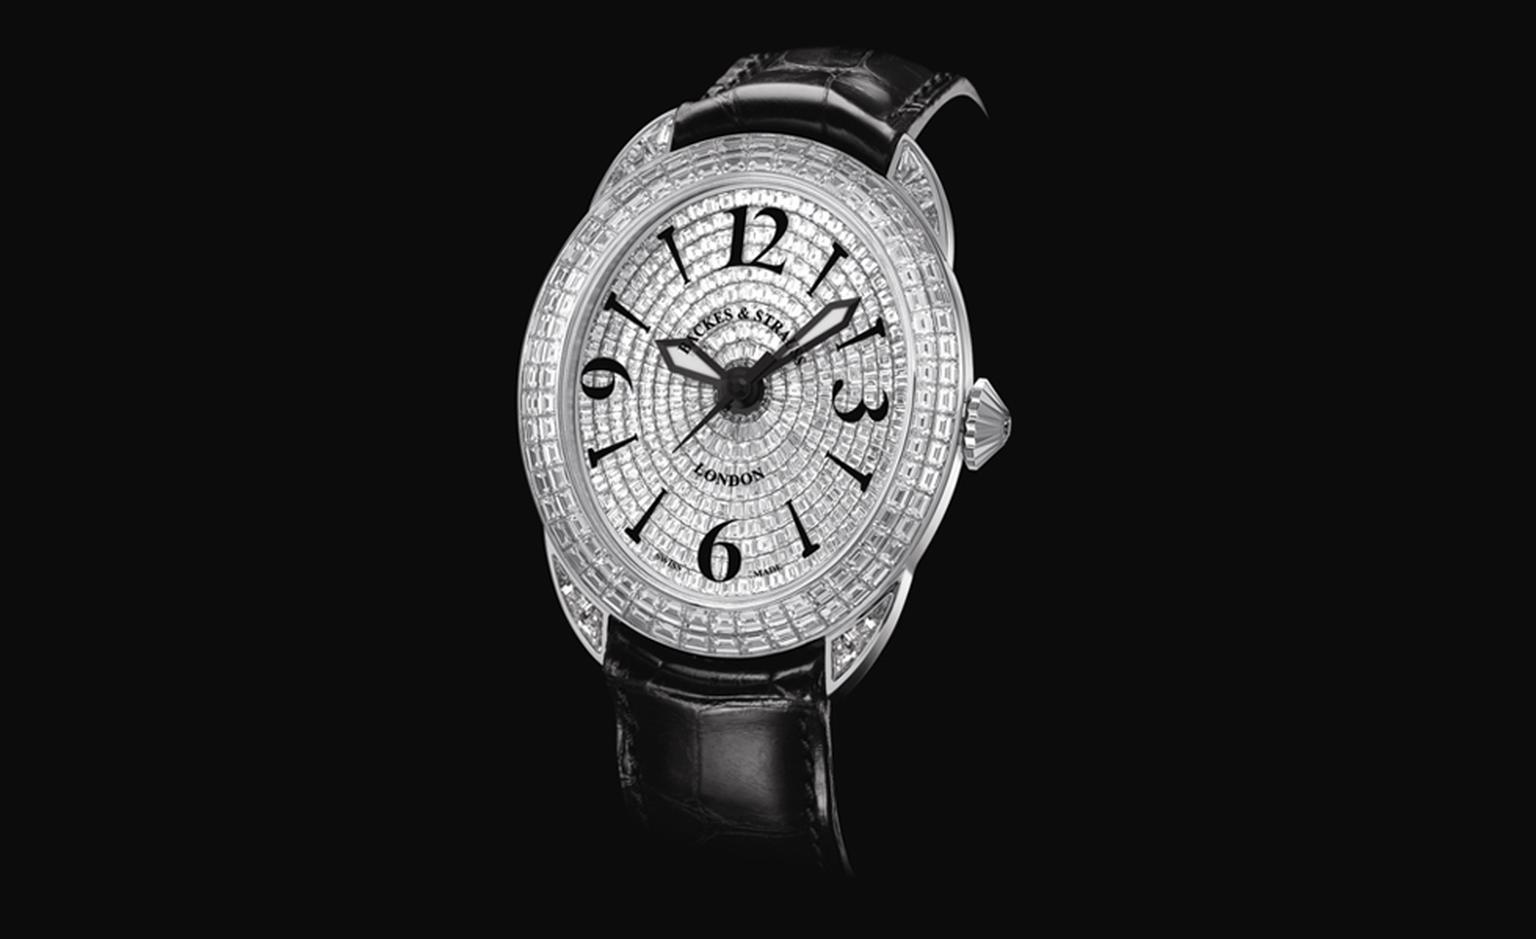 Backes & Strauss. The Prince Regent 4452 from The Royal Collection, one of the three Princes, a Limited Edition handcrafted bespoke masterpiece. Black alligator strap. Diamonds and white gold. Diamonds all individually cut and polished. Price fr...